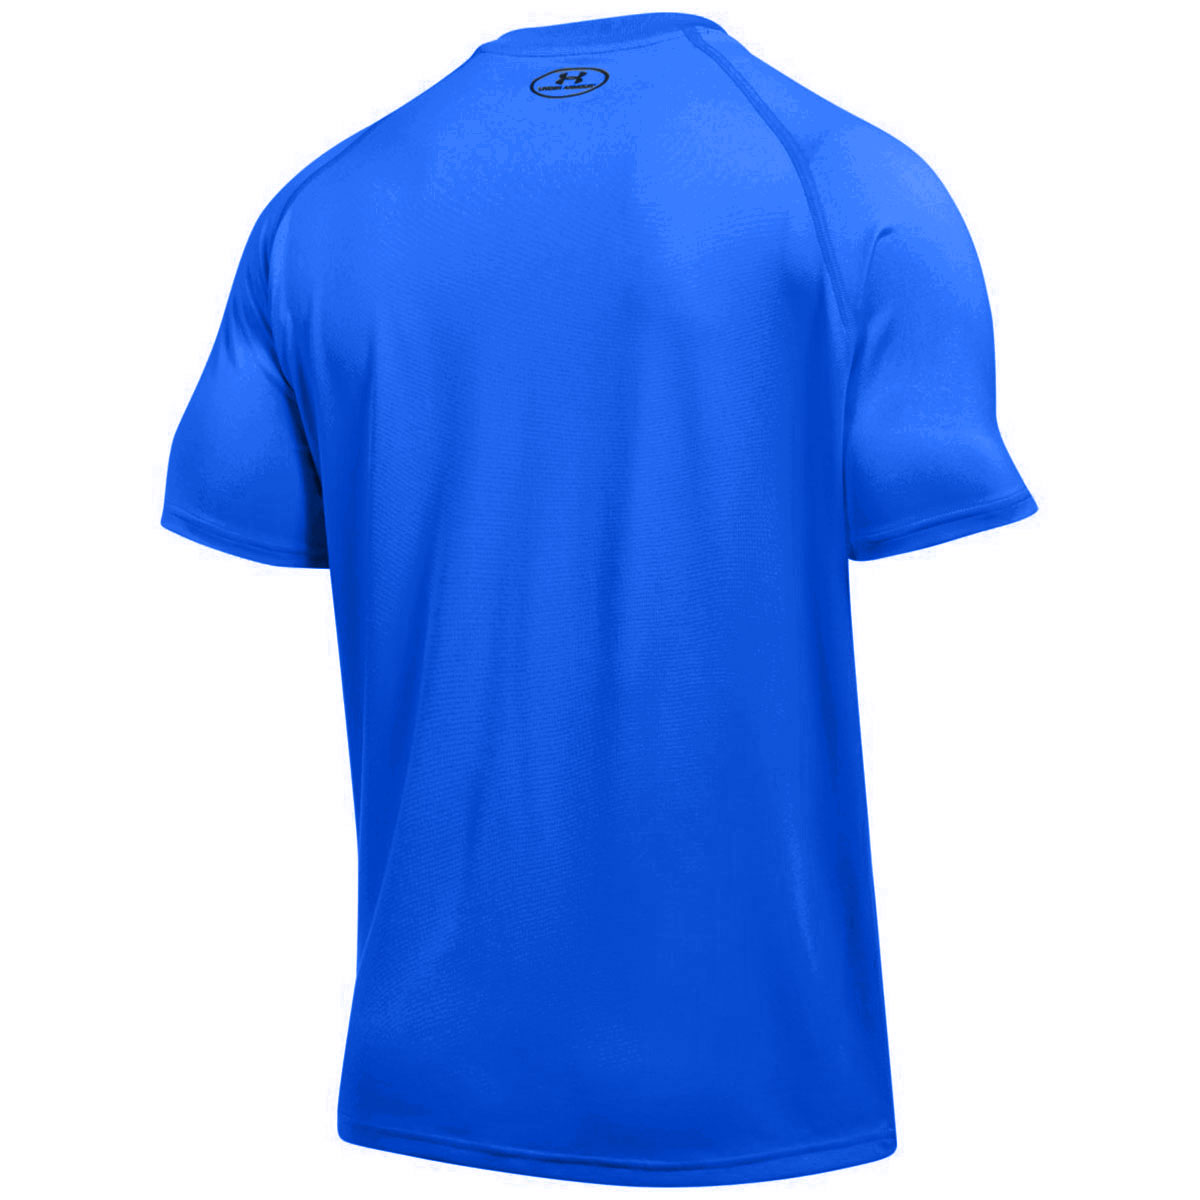 Under-Armour-Mens-UA-Tech-SS-T-Shirt-HeatGear-Training-31-OFF-RRP thumbnail 26